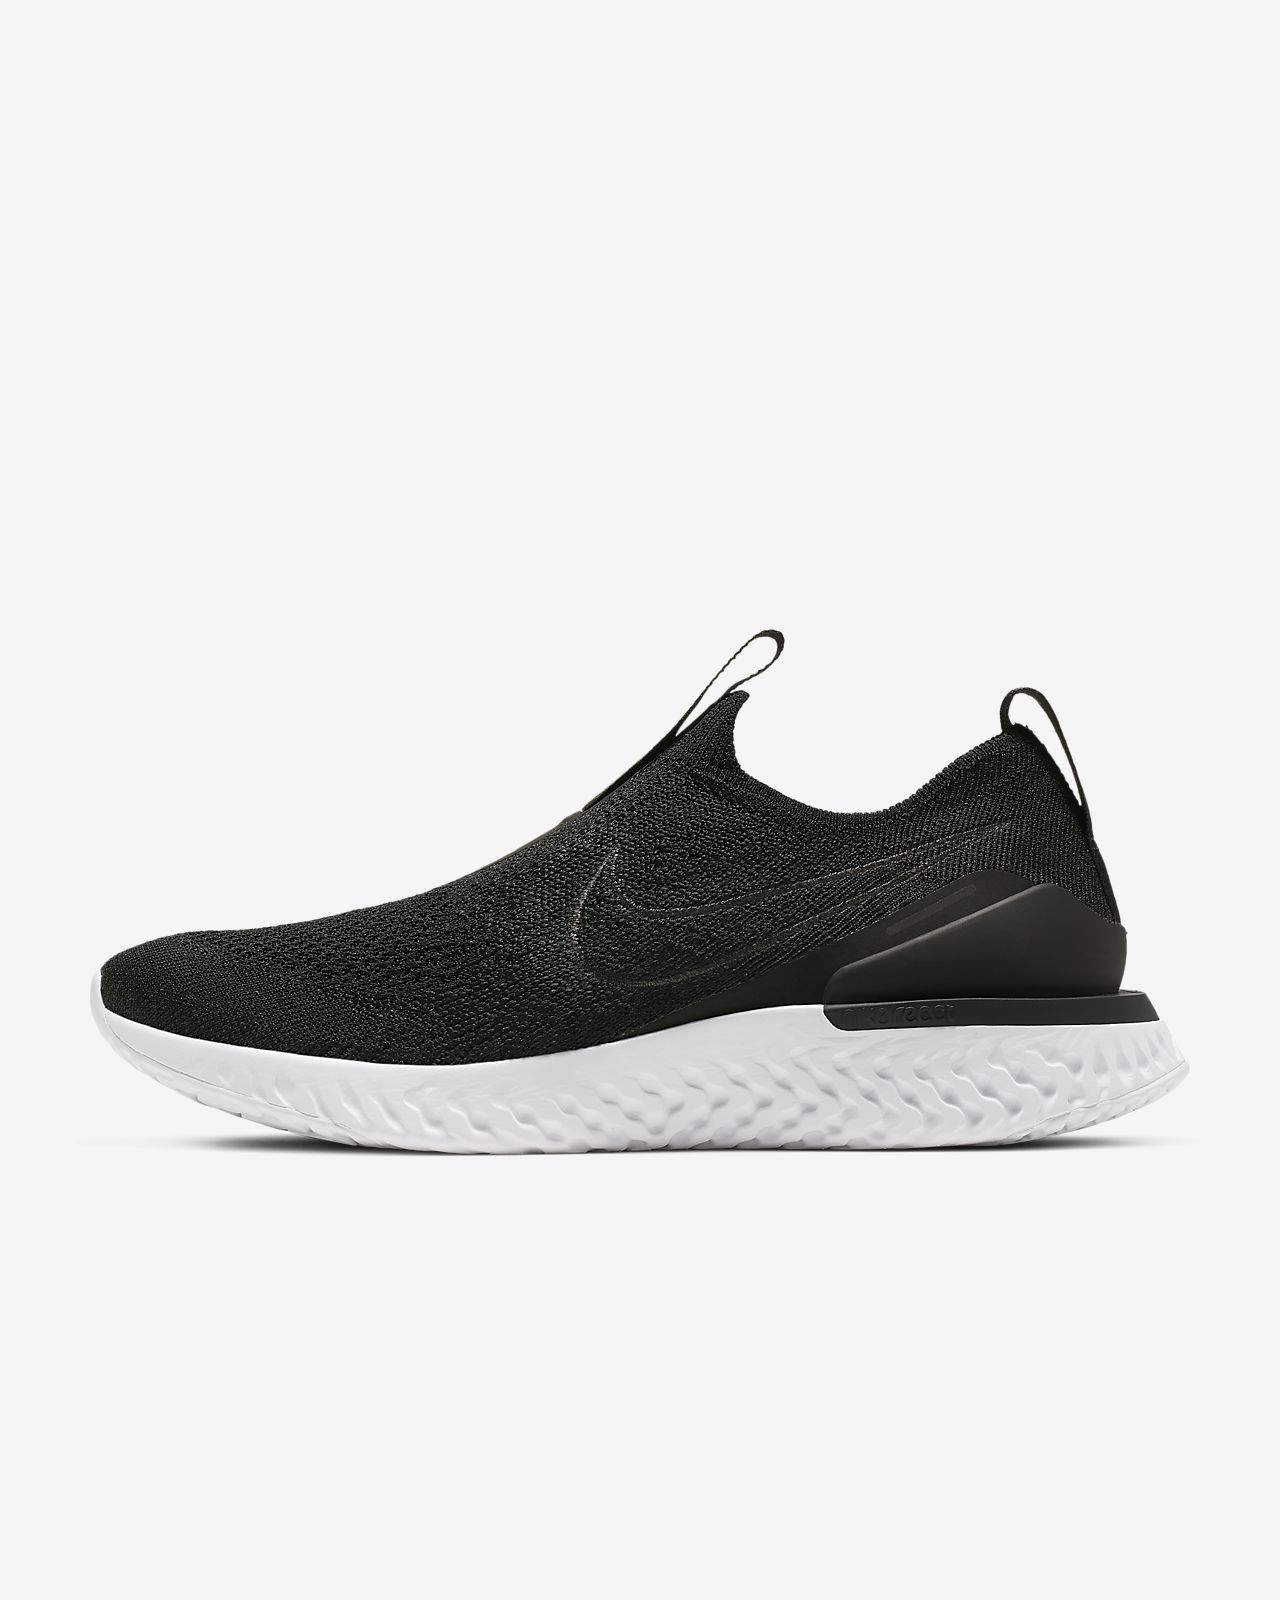 058f326faabc Nike Epic Phantom React Flyknit Women s Running Shoe. Nike.com GB